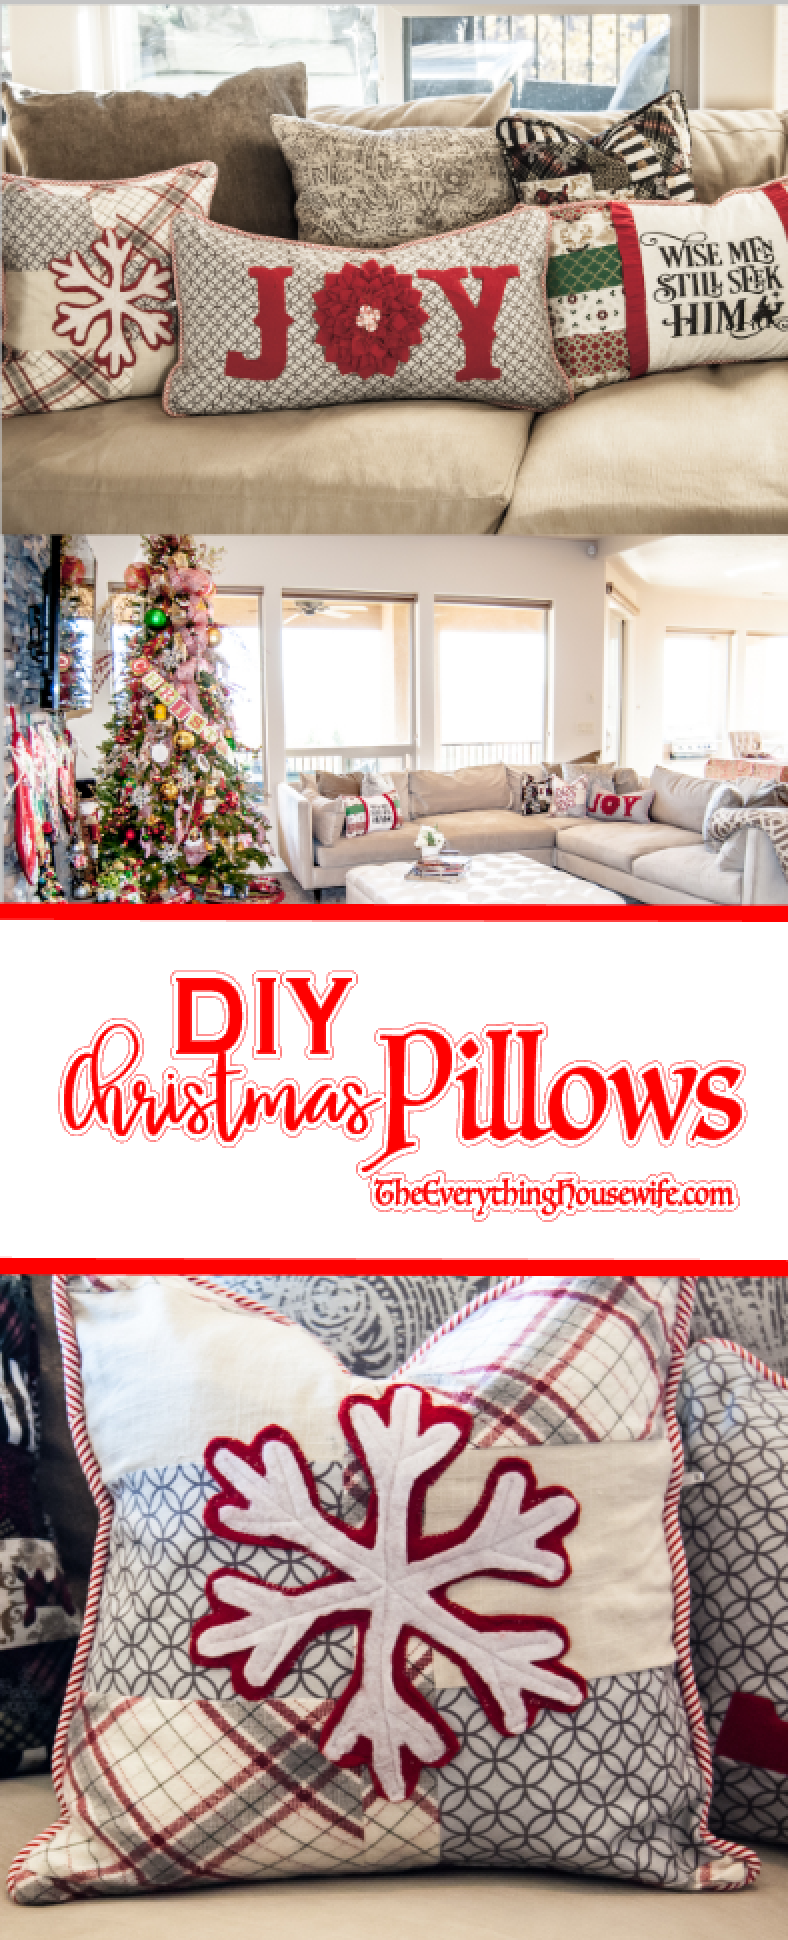 Diy Decorative Christmas Pillows : Christmas Pillows, DIY - The Everything Housewife.com